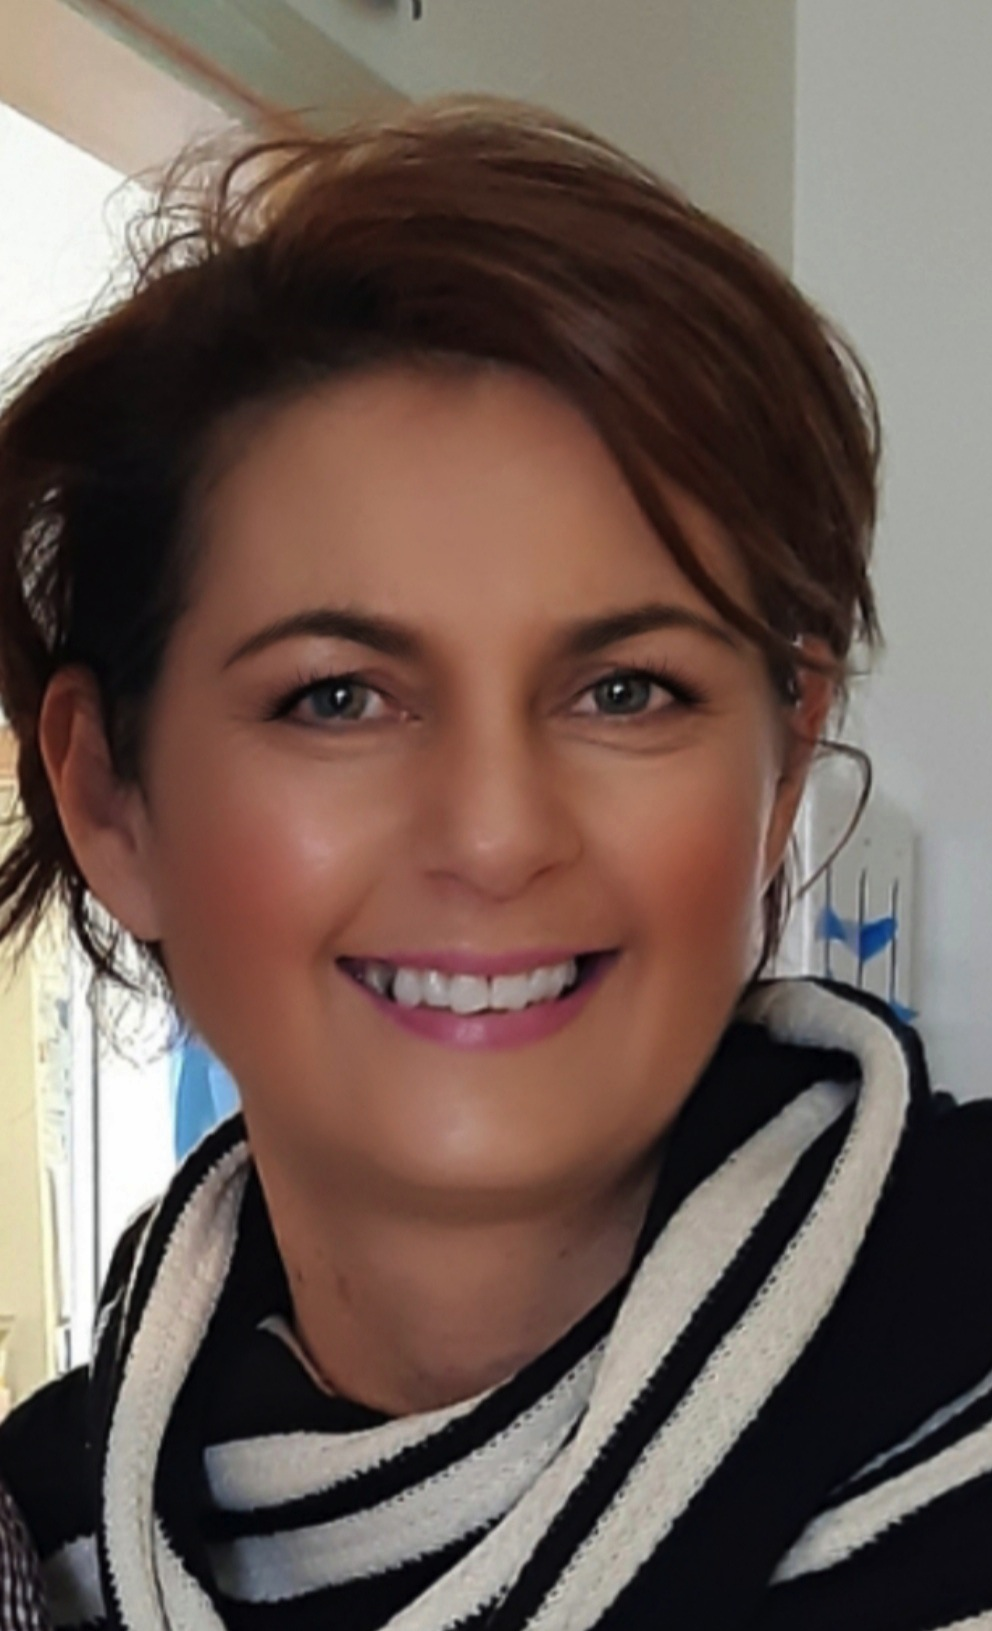 Mother-of-three Claire McLaughlin is healthy again after undergoing liver transplant surgery. She had been days from death last year but is now looking forward to a bright future